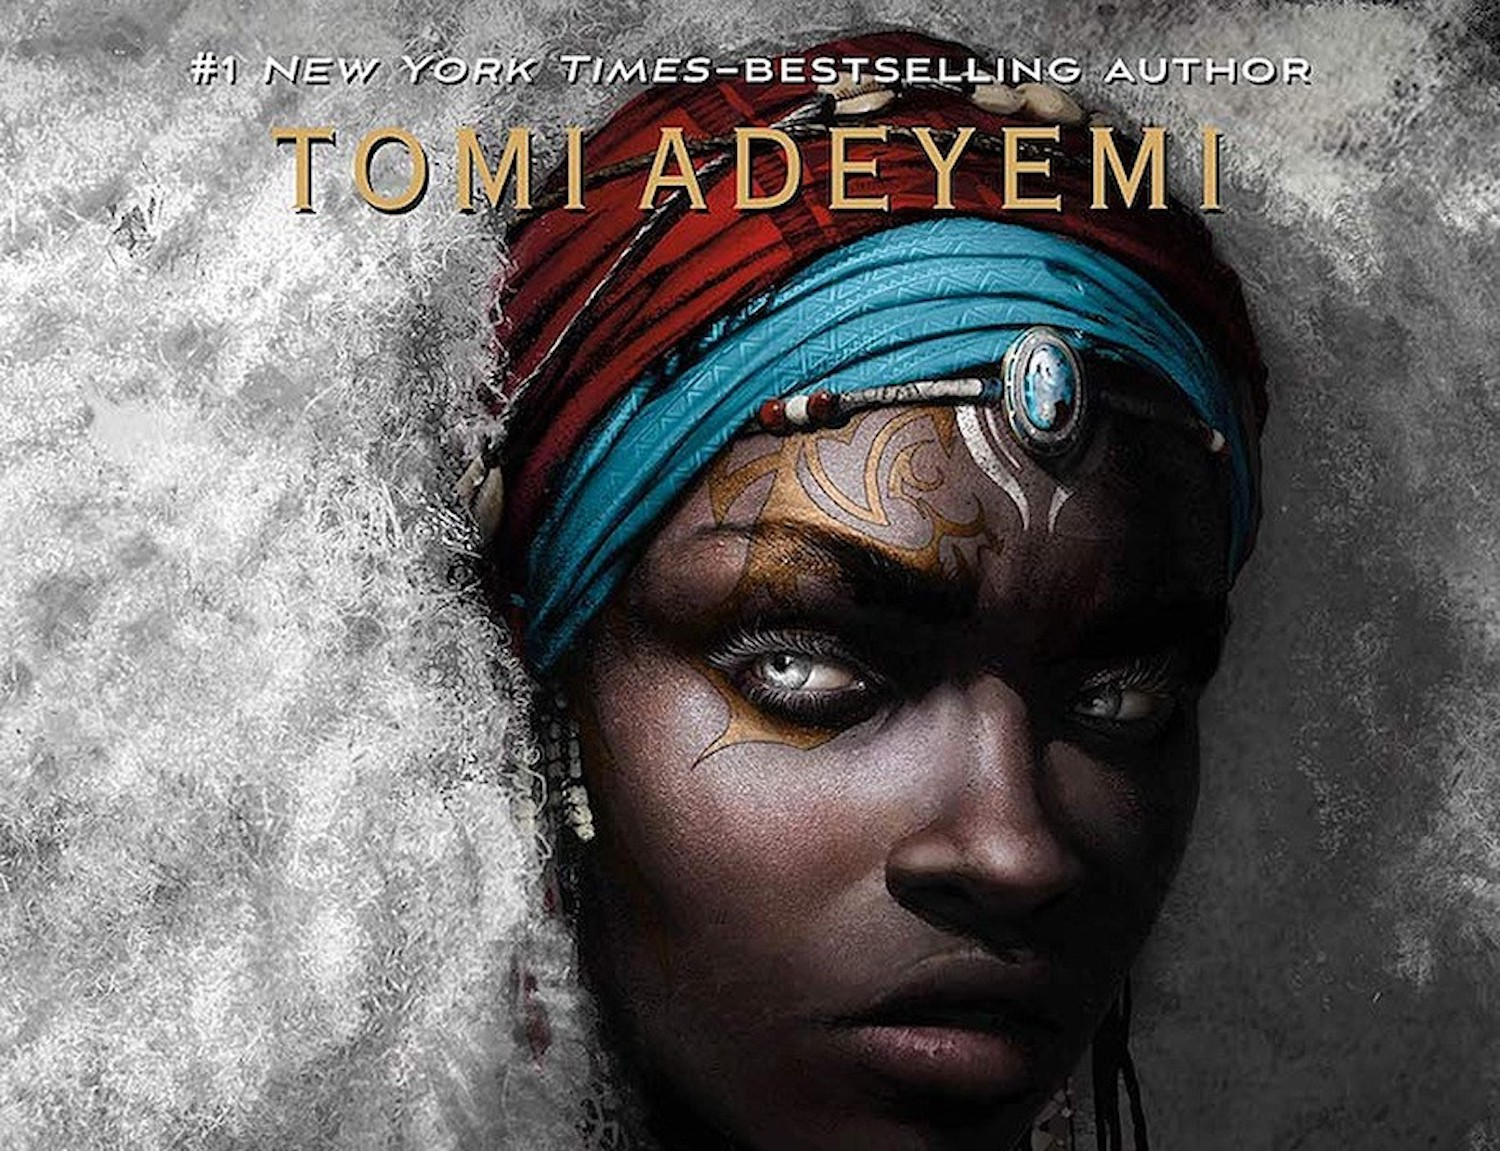 Tomi Adeyemi, Children of Virtue and Vengeance, African American Author, Black Author, African American Childrens Book, Black Childrens Book, African American Literature, Black Literature, KOLUMN Magazine, KOLUMN, KINDR'D Magazine, KINDR'D, Willoughby Avenue, Wriit,